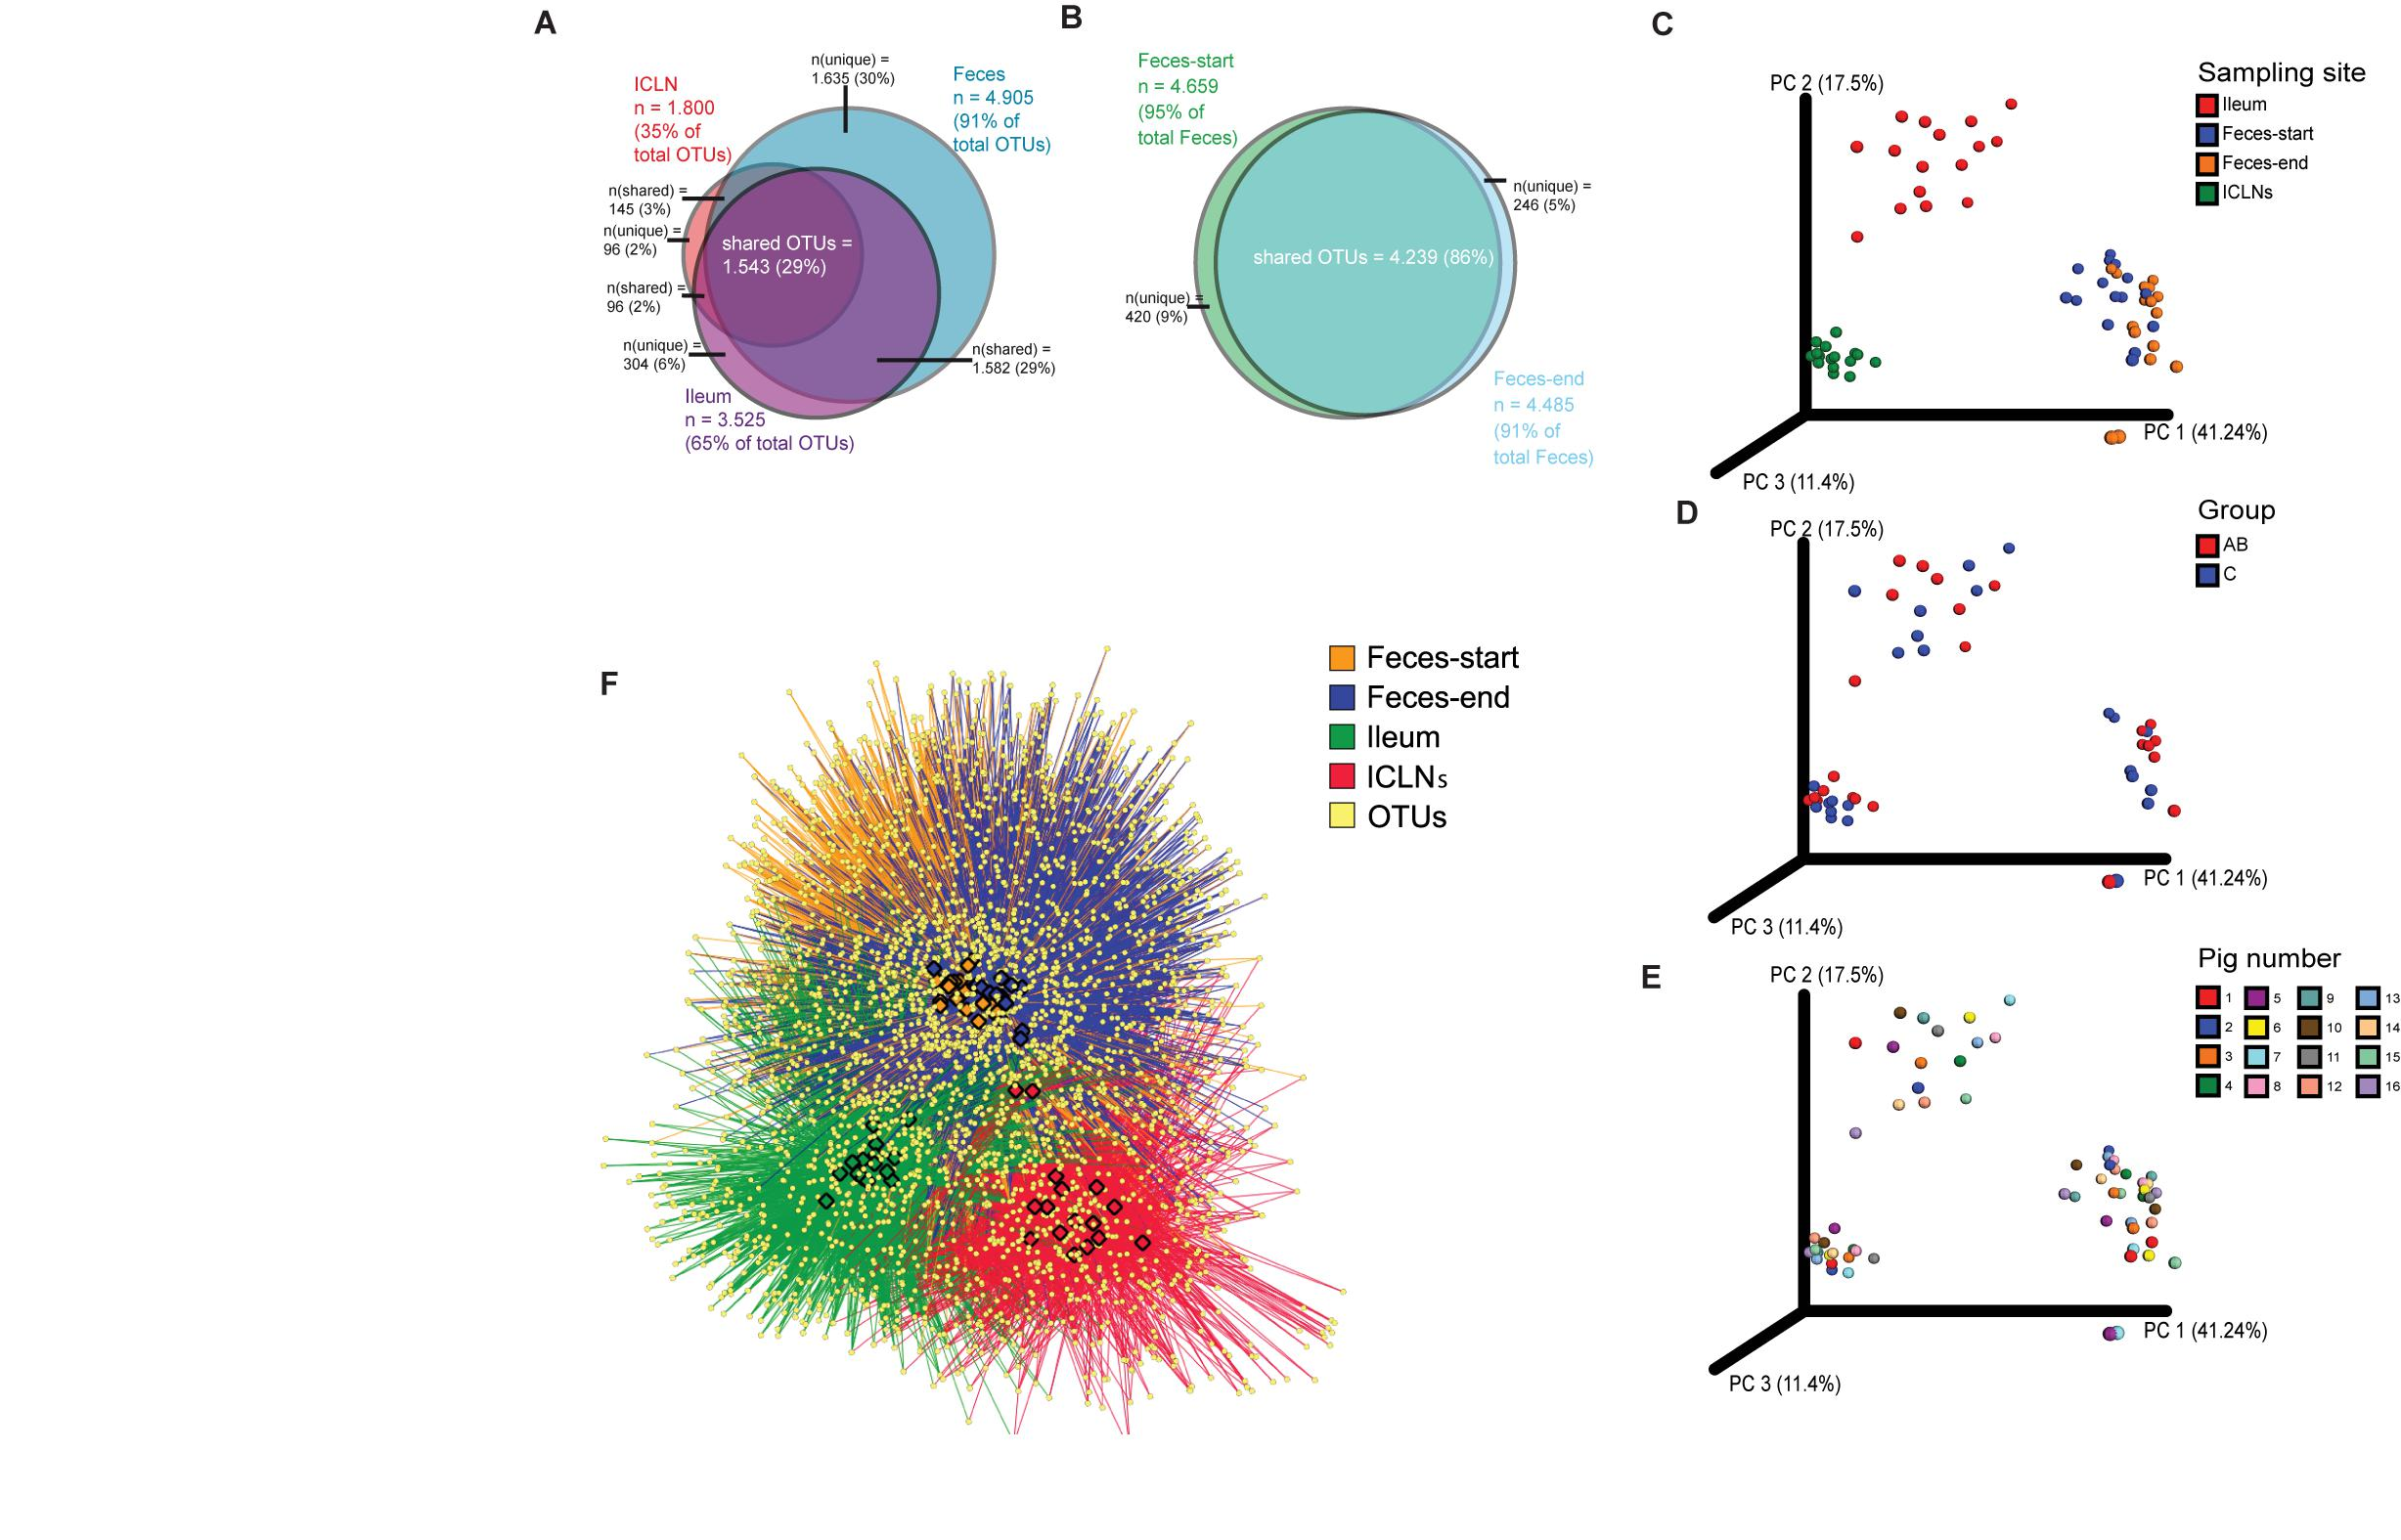 Frontiers | Microbiota of the Gut-Lymph Node Axis: Depletion